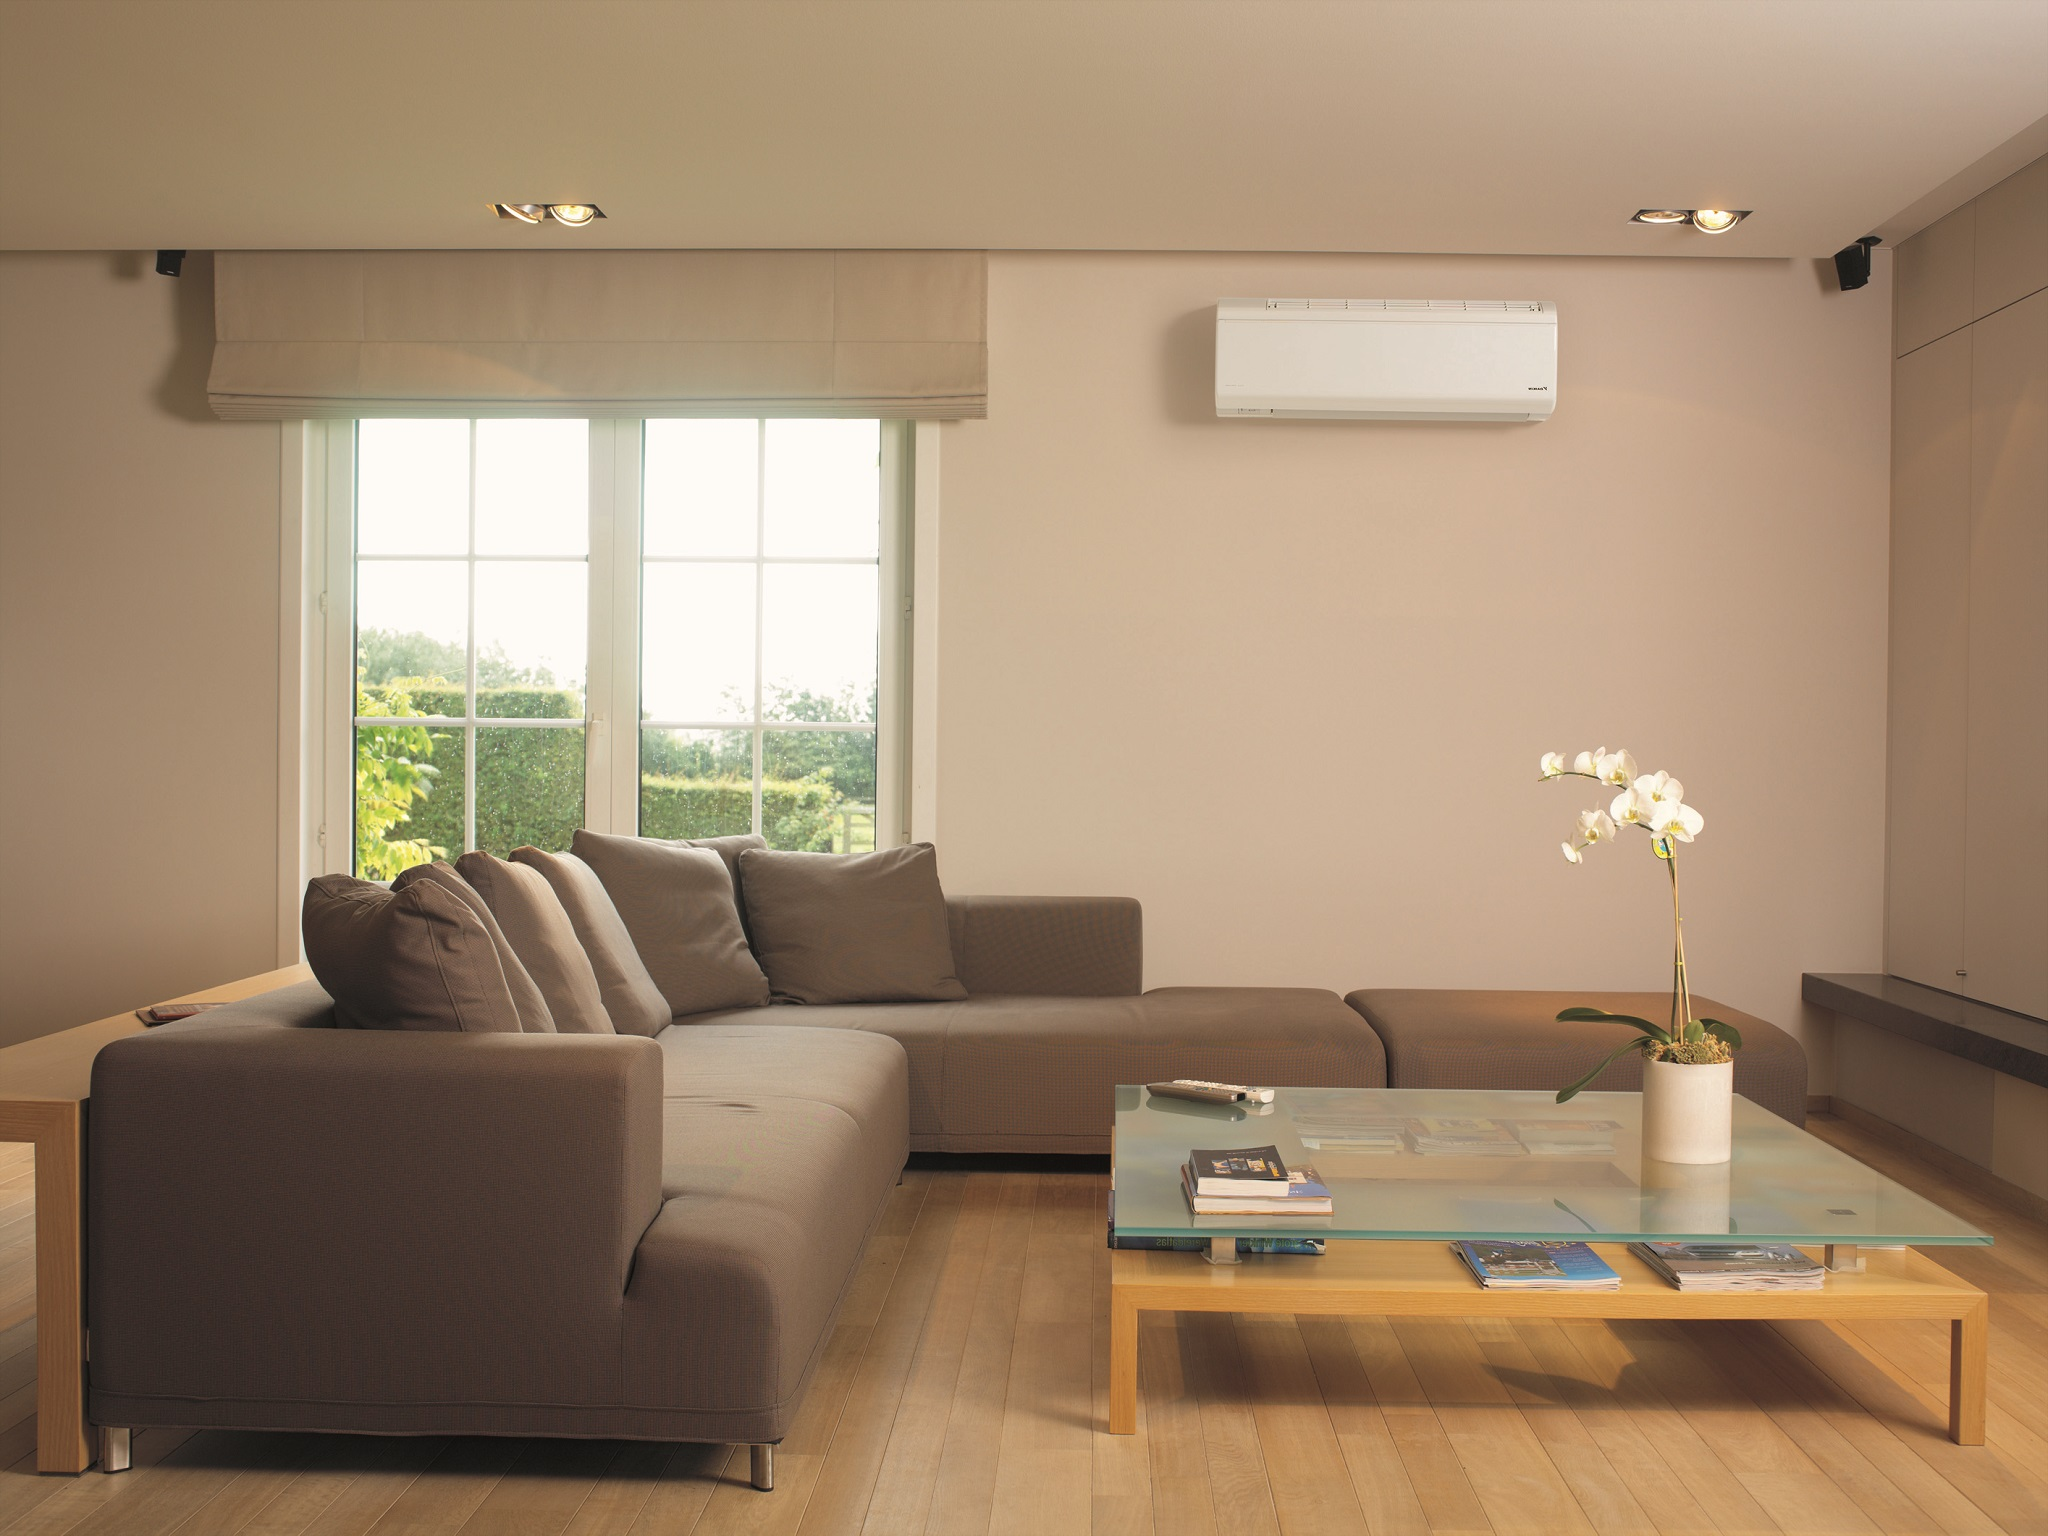 Contemporary Living Room Air Conditioner Placement (Image 8 of 19)